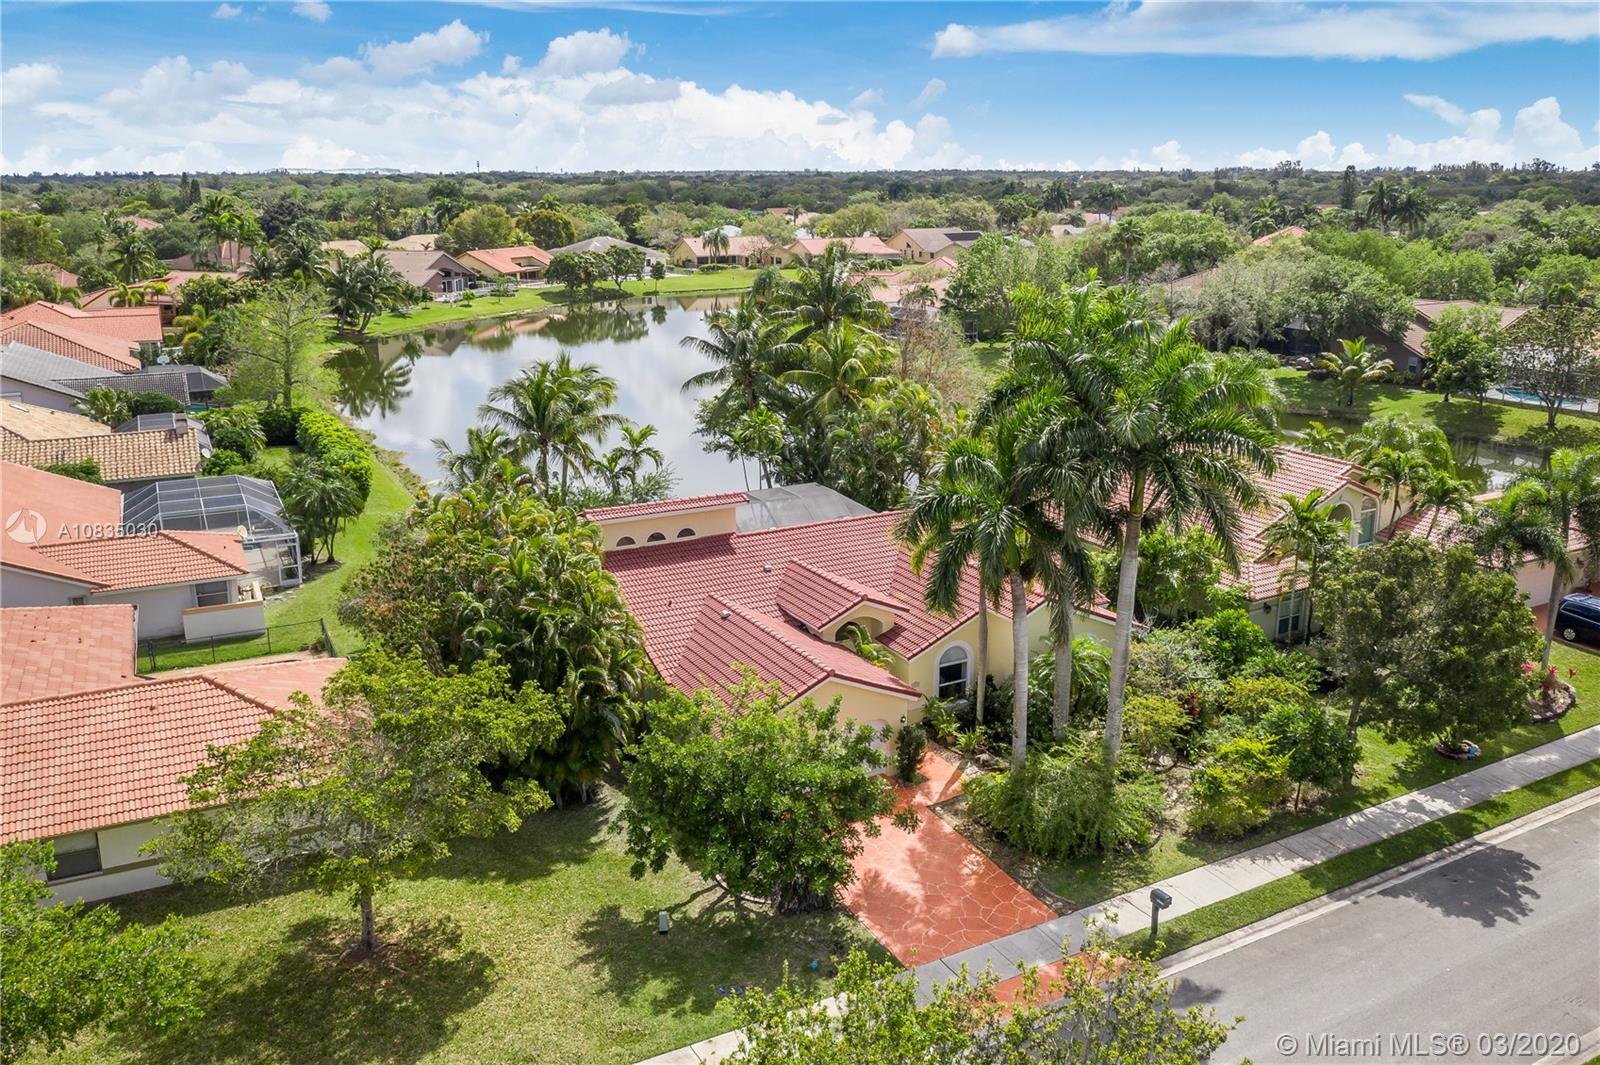 5055 NW 100th Ter, Coral Springs, FL 33076 - Coral Springs, FL real estate listing